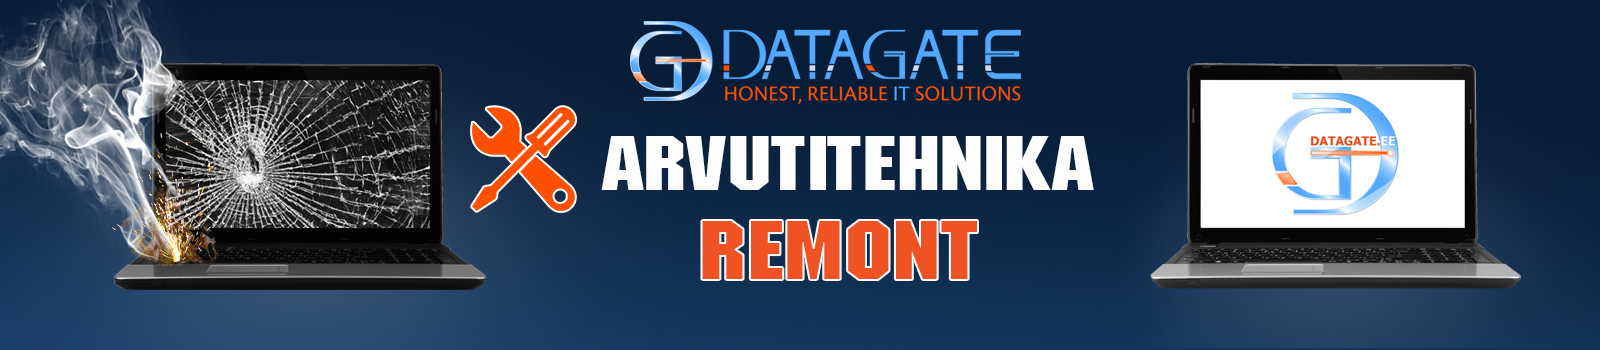 712cc18aa89 Remont - Datagate Arvutid